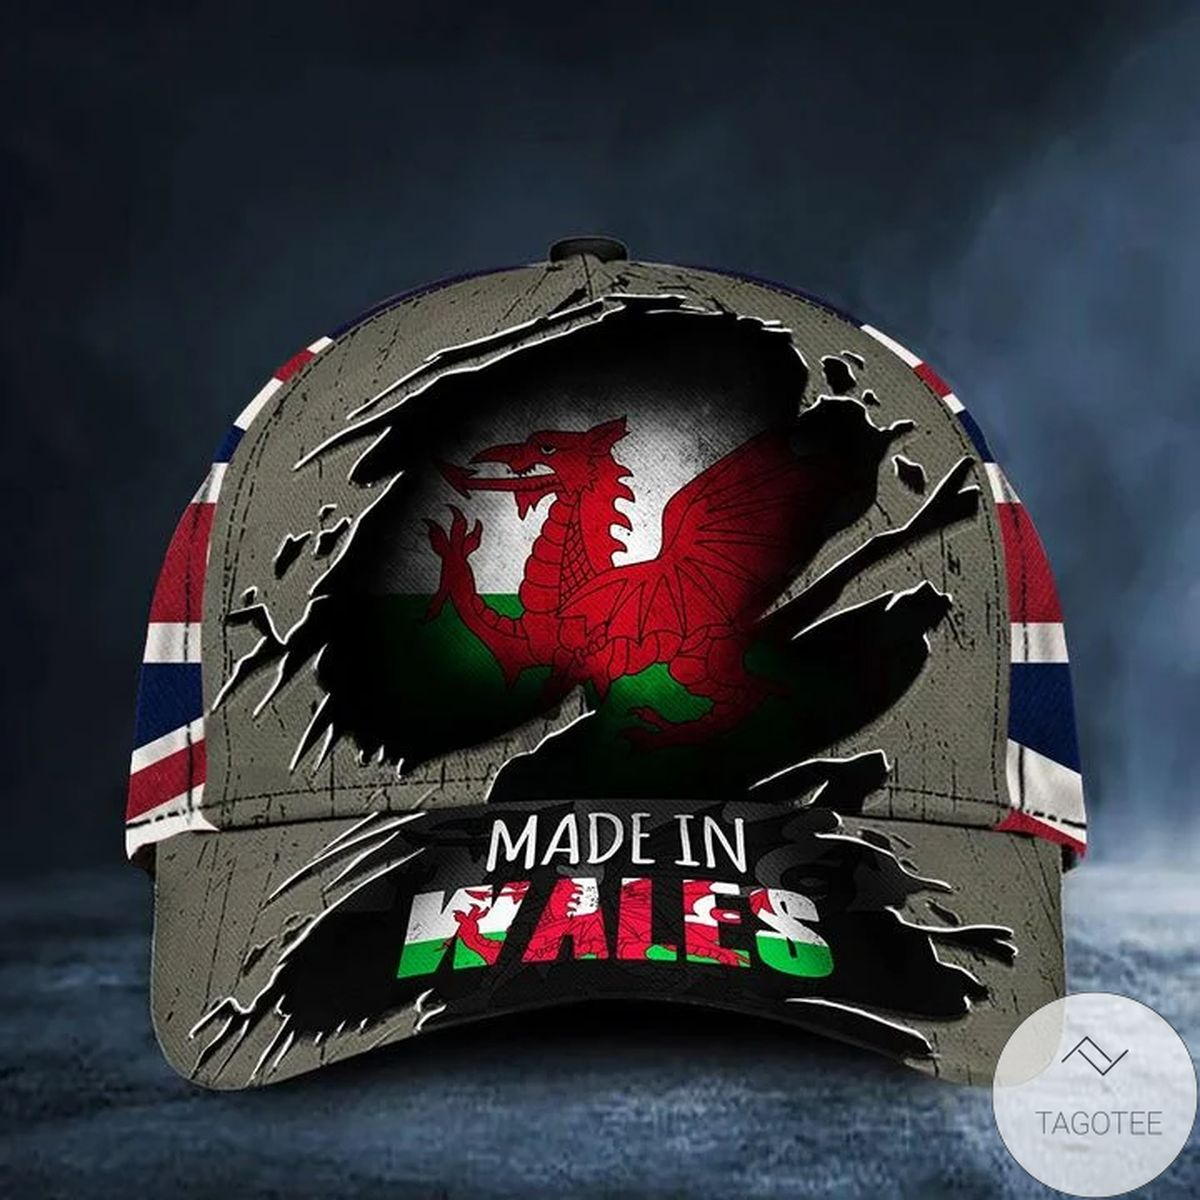 Made In Wales Hat Vintage Wales Flag Cap Patriots Gifts For Him